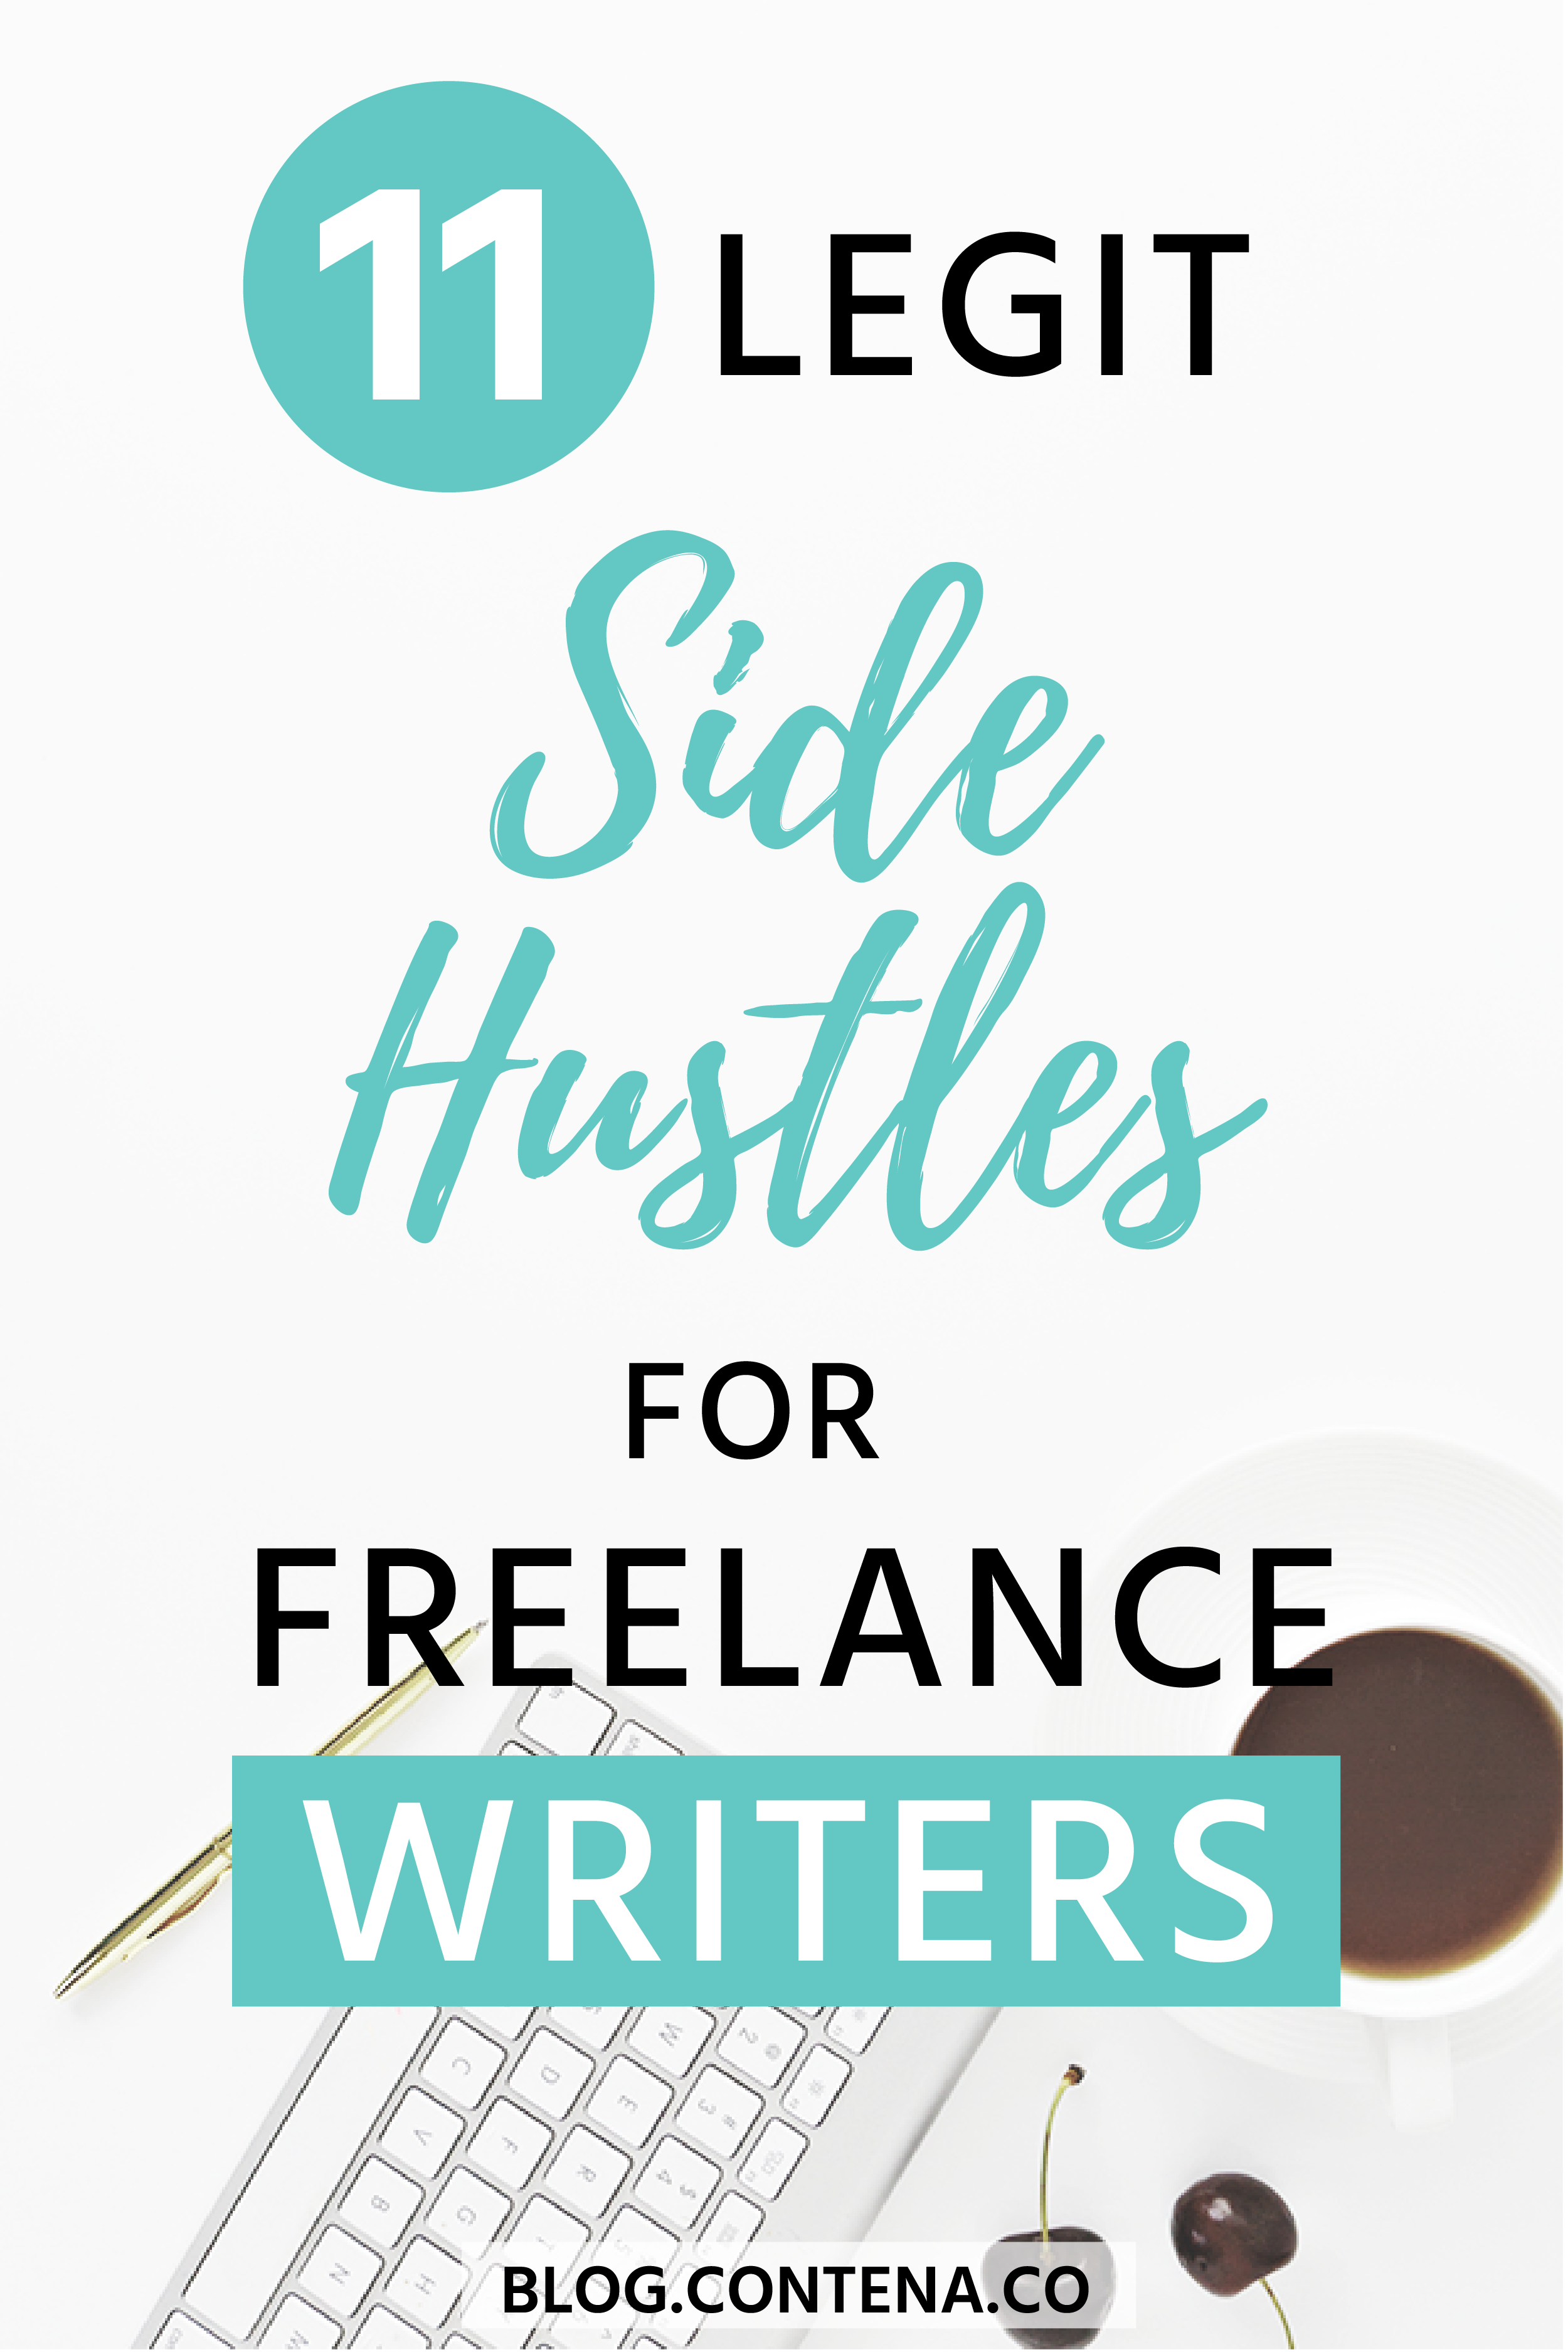 If you're making money as a  freelance writer, you might also want a side-hustle. Here are 11 legit jobs and side hustles for freelancers. The best jobs to make you money where you can from home or work remotely. #WorkFromHome #SideHustle #RemoteWork #FreelanceWriting #Freelancer #WorkFromHome #SideHustle #Money #OnlineBusiness #Writing #WritingJobs #Money